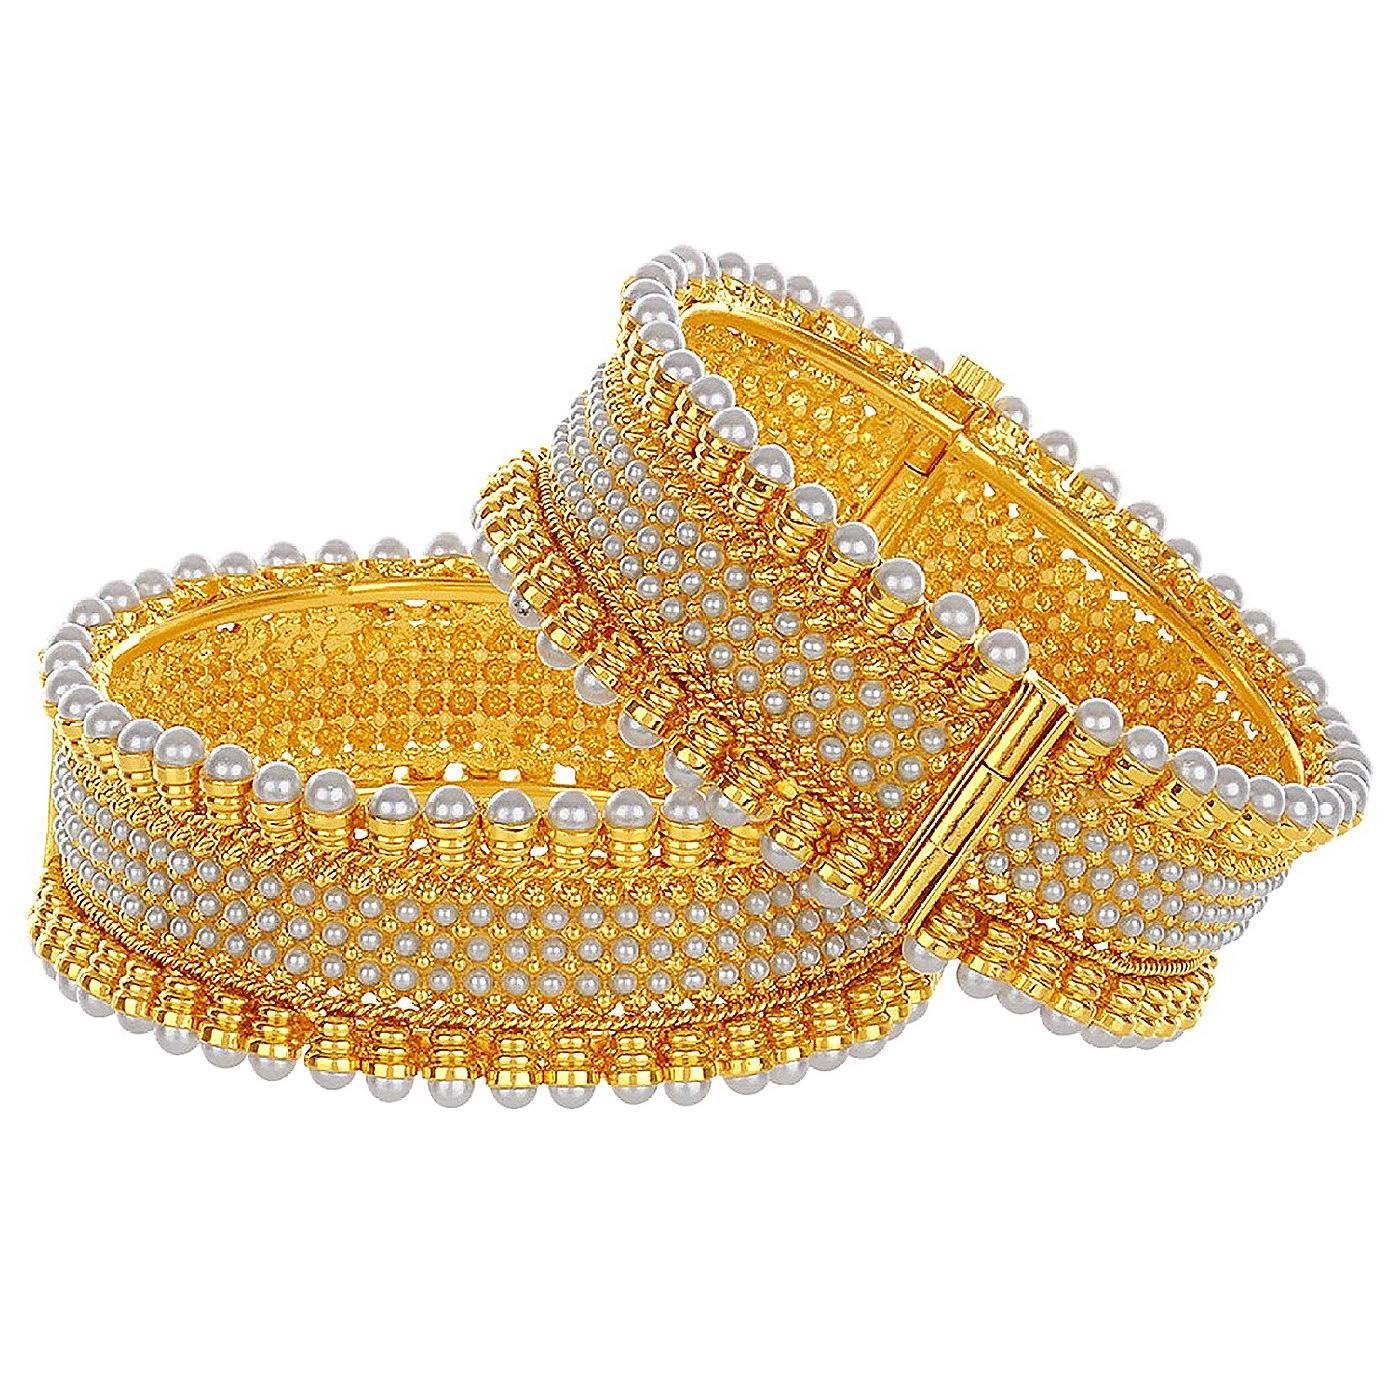 Engagement & Wedding Trustful Indian Bollywood Traditional Goldplated Kada Bracelets Bangle Jewellery 2*6 With A Long Standing Reputation